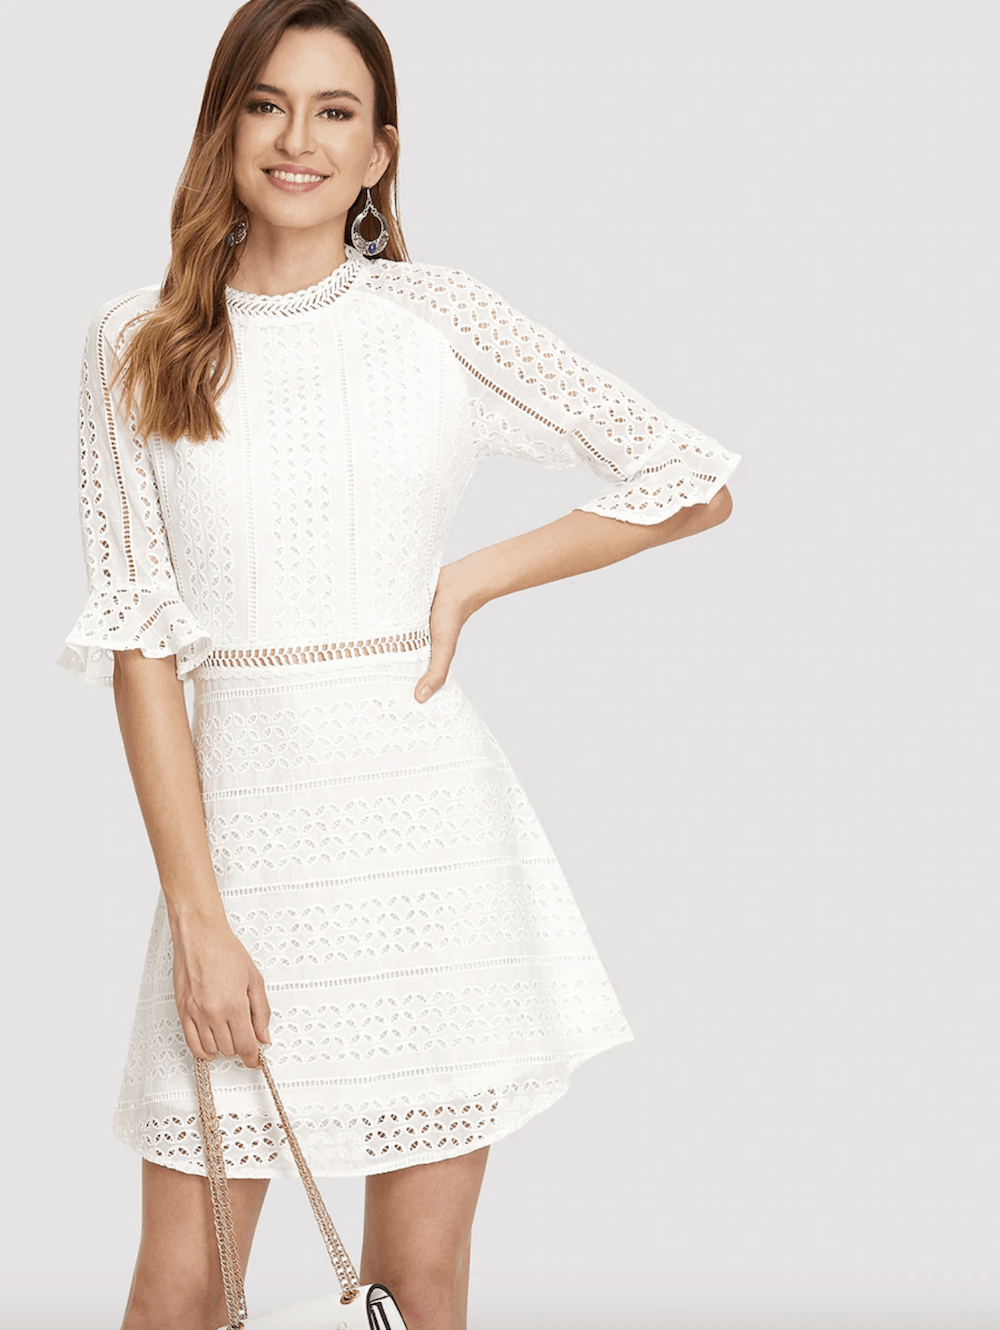 bridal shower dress for the bride white ruffle cuff guipure lace overlay dress